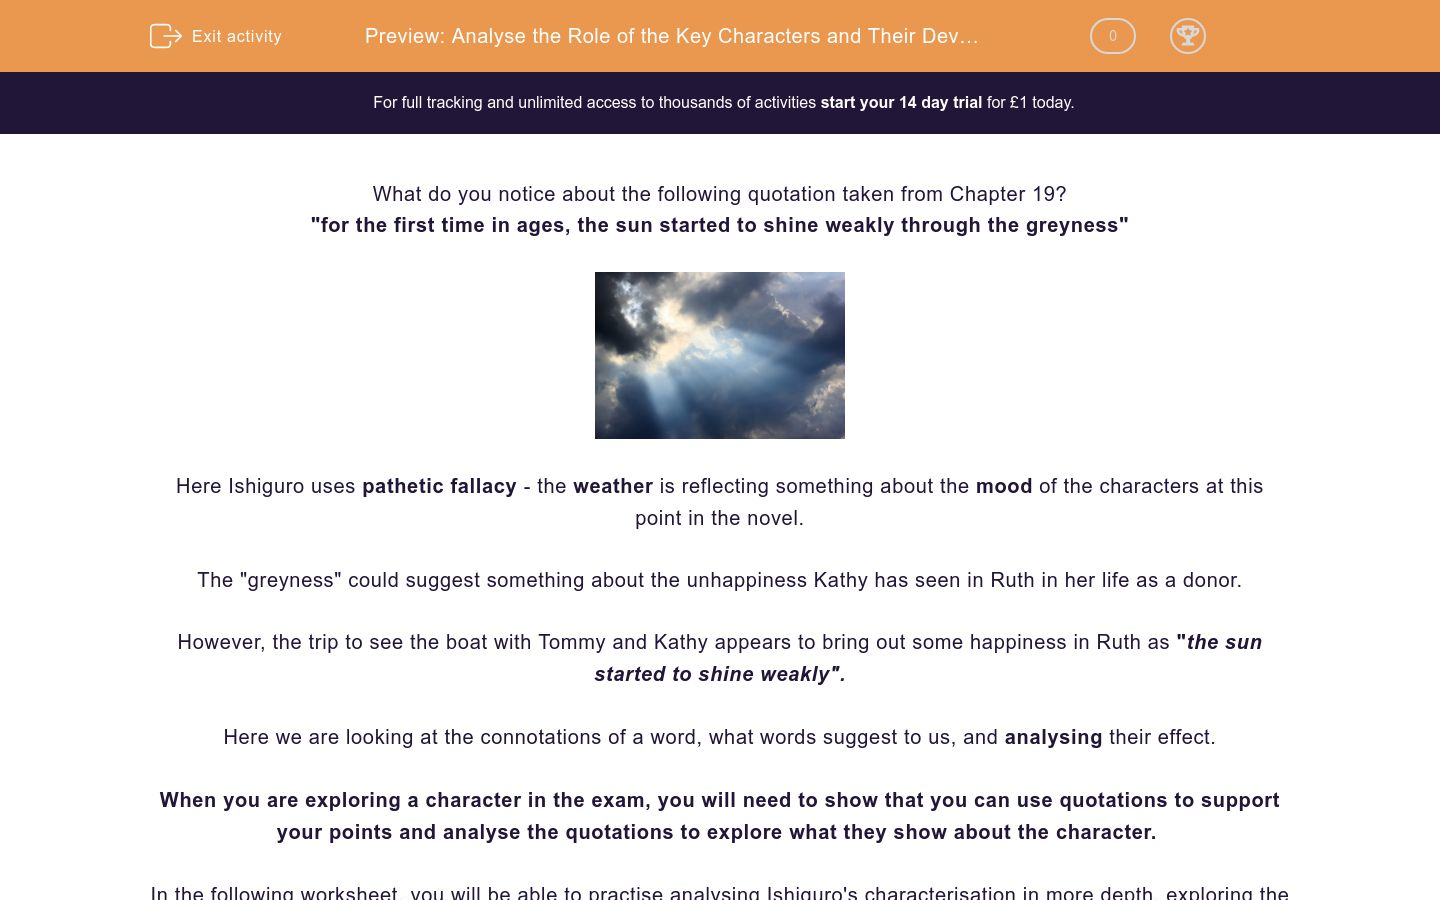 'Analyse the Role of the Key Characters and Their Development in 'Never Let Me Go'' worksheet